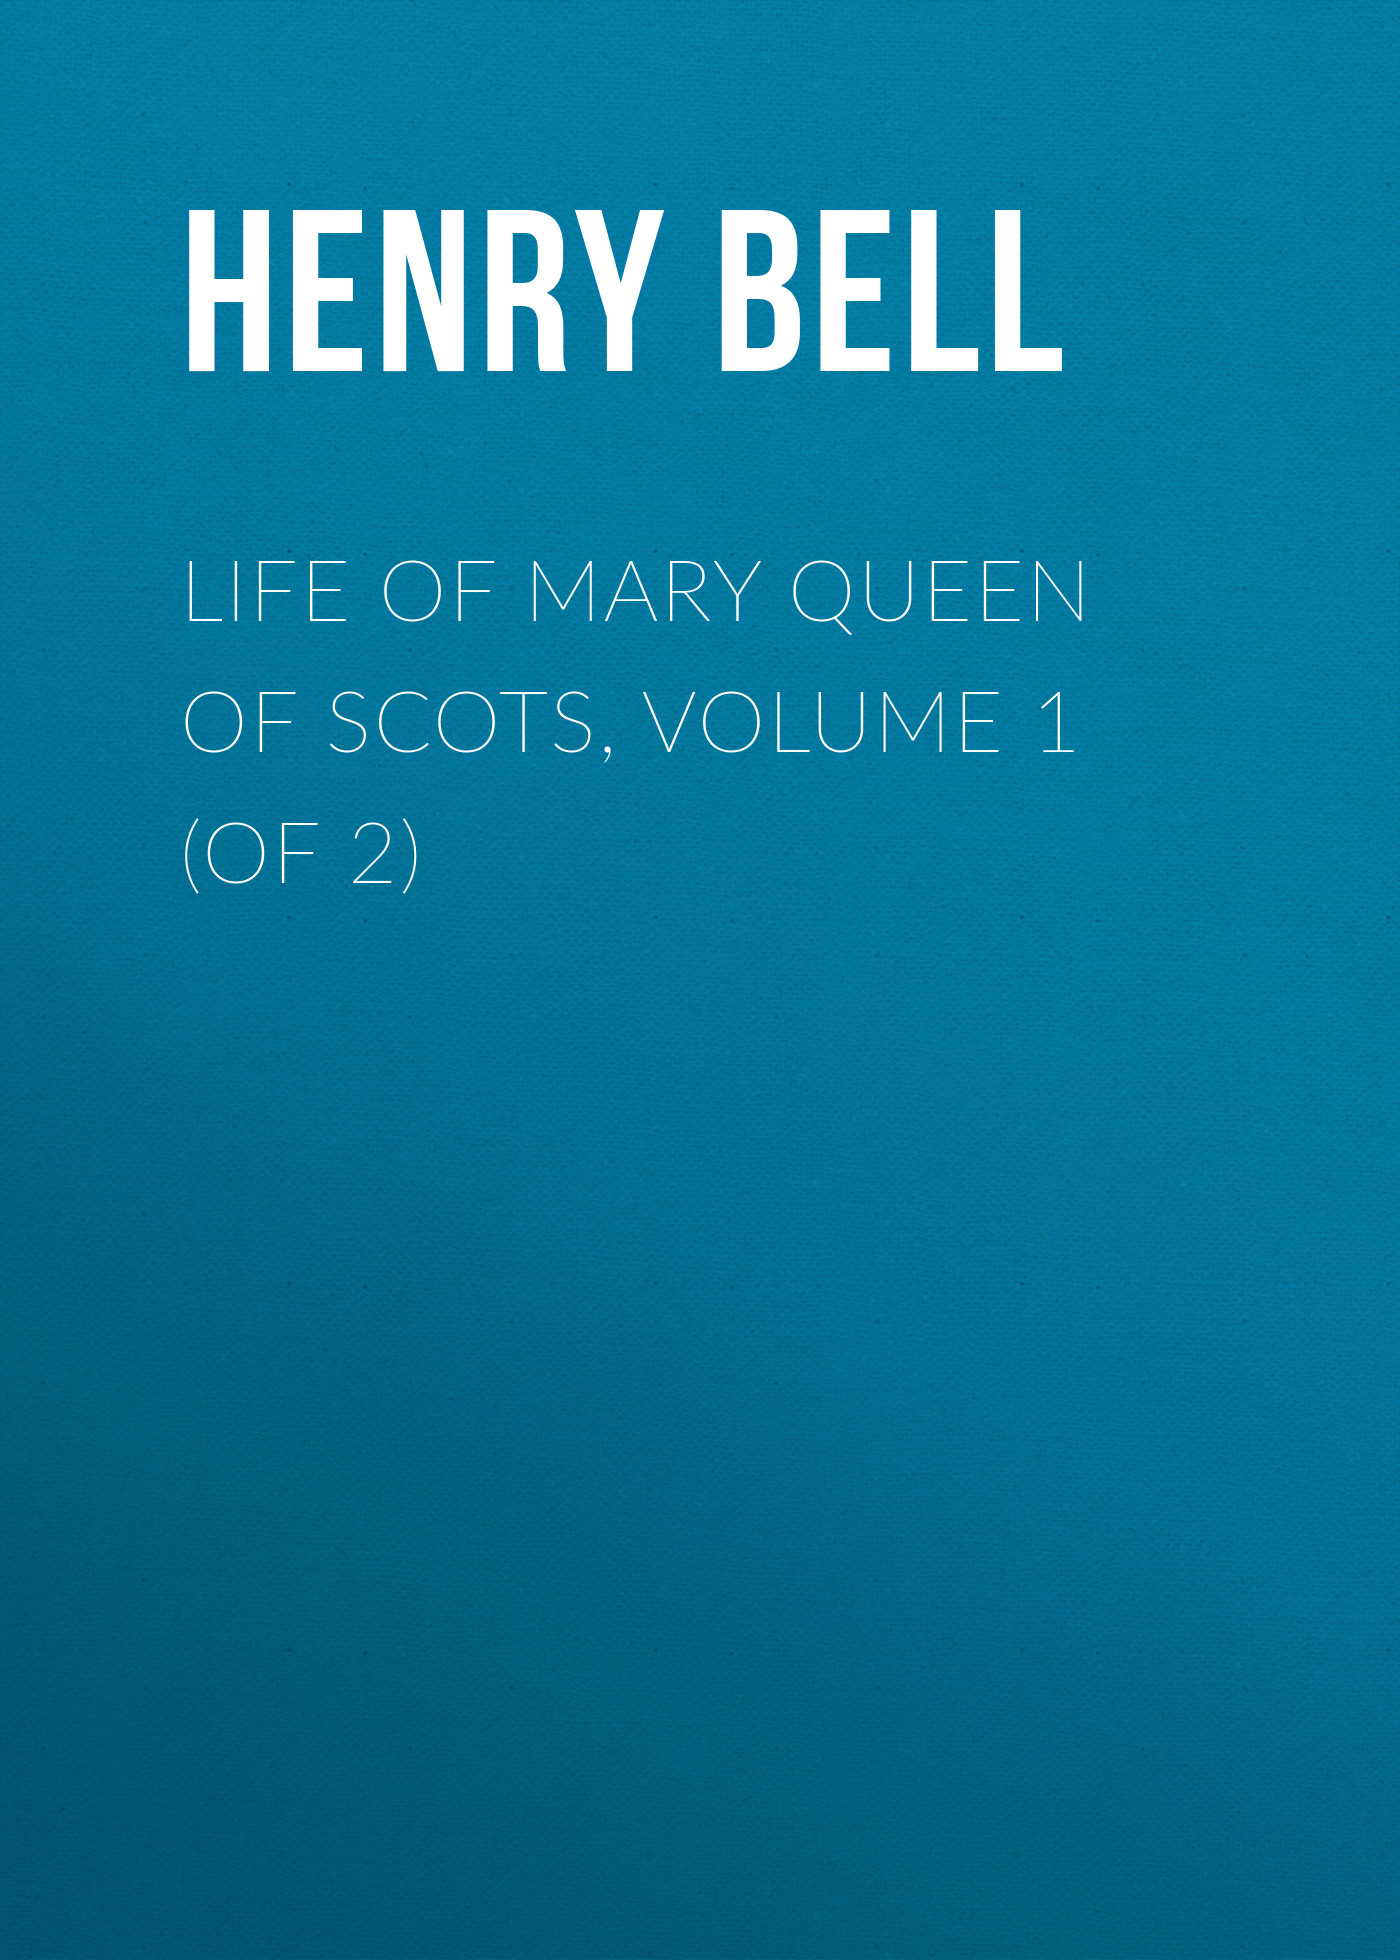 лучшая цена Bell Henry Glassford Life of Mary Queen of Scots, Volume 1 (of 2)